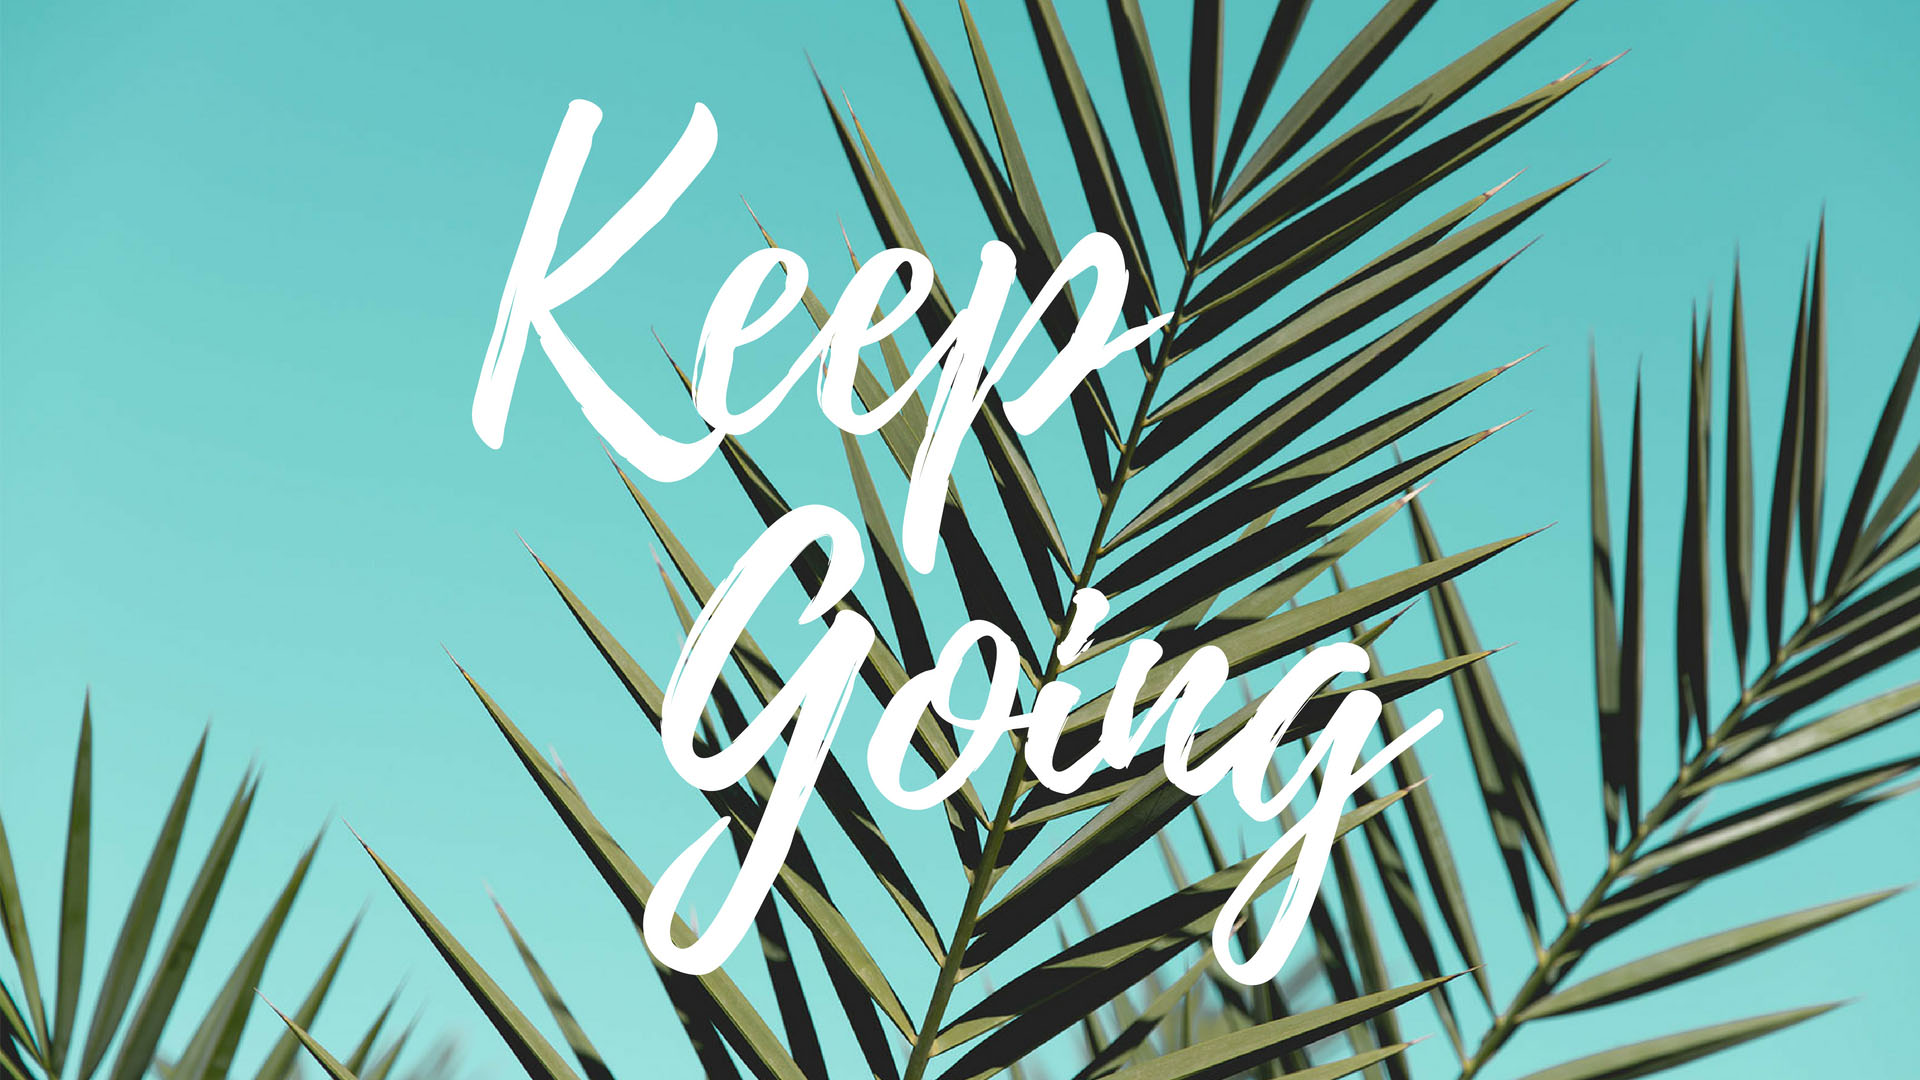 Keep Going Quote Desktop + Mac Wallpaper by preppywallpapers.com